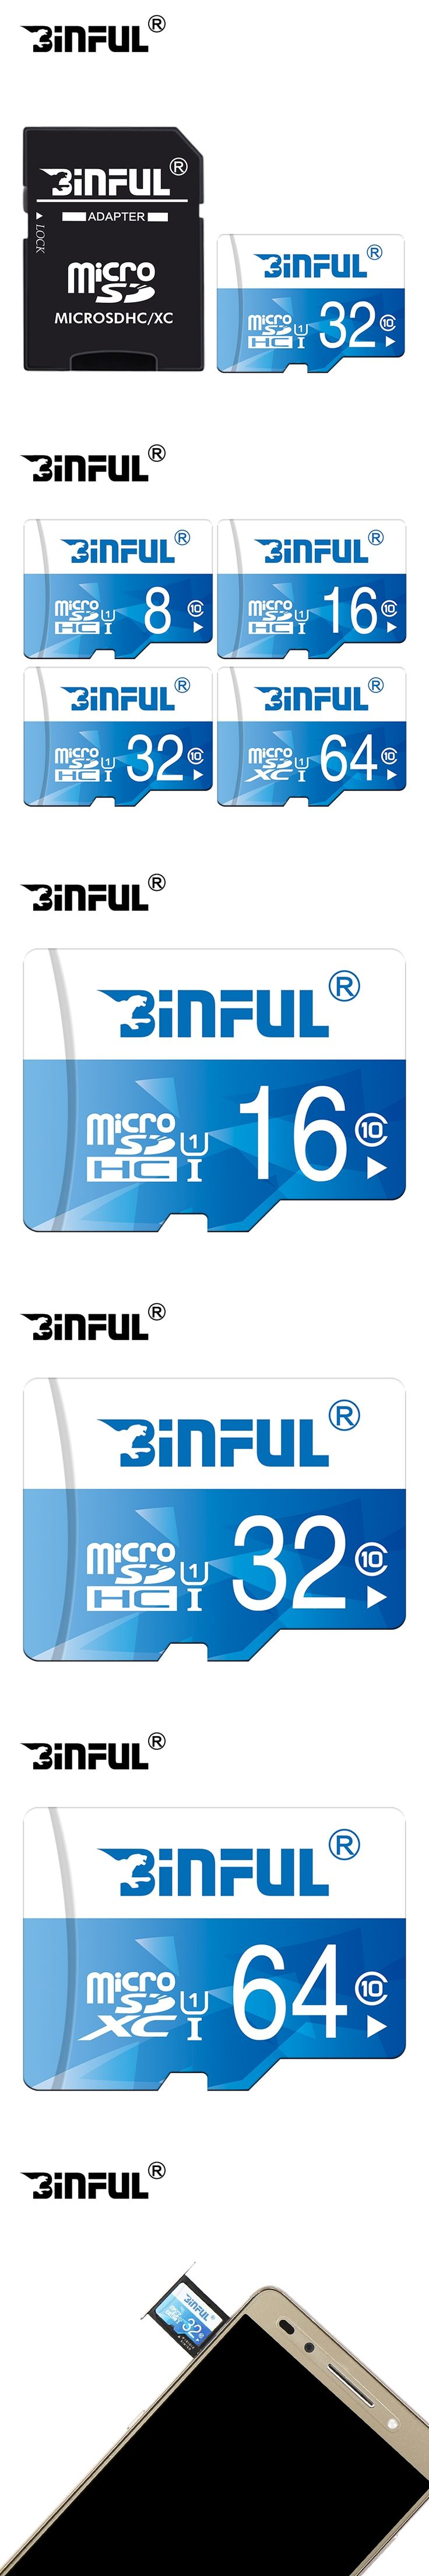 Original Memory Card C10 32GB 16GB 8GB SDHC Micro SD Card 128GB 64GB SDXC Microsd blue SD Card 4GB C6 TF Card cartao de memoria